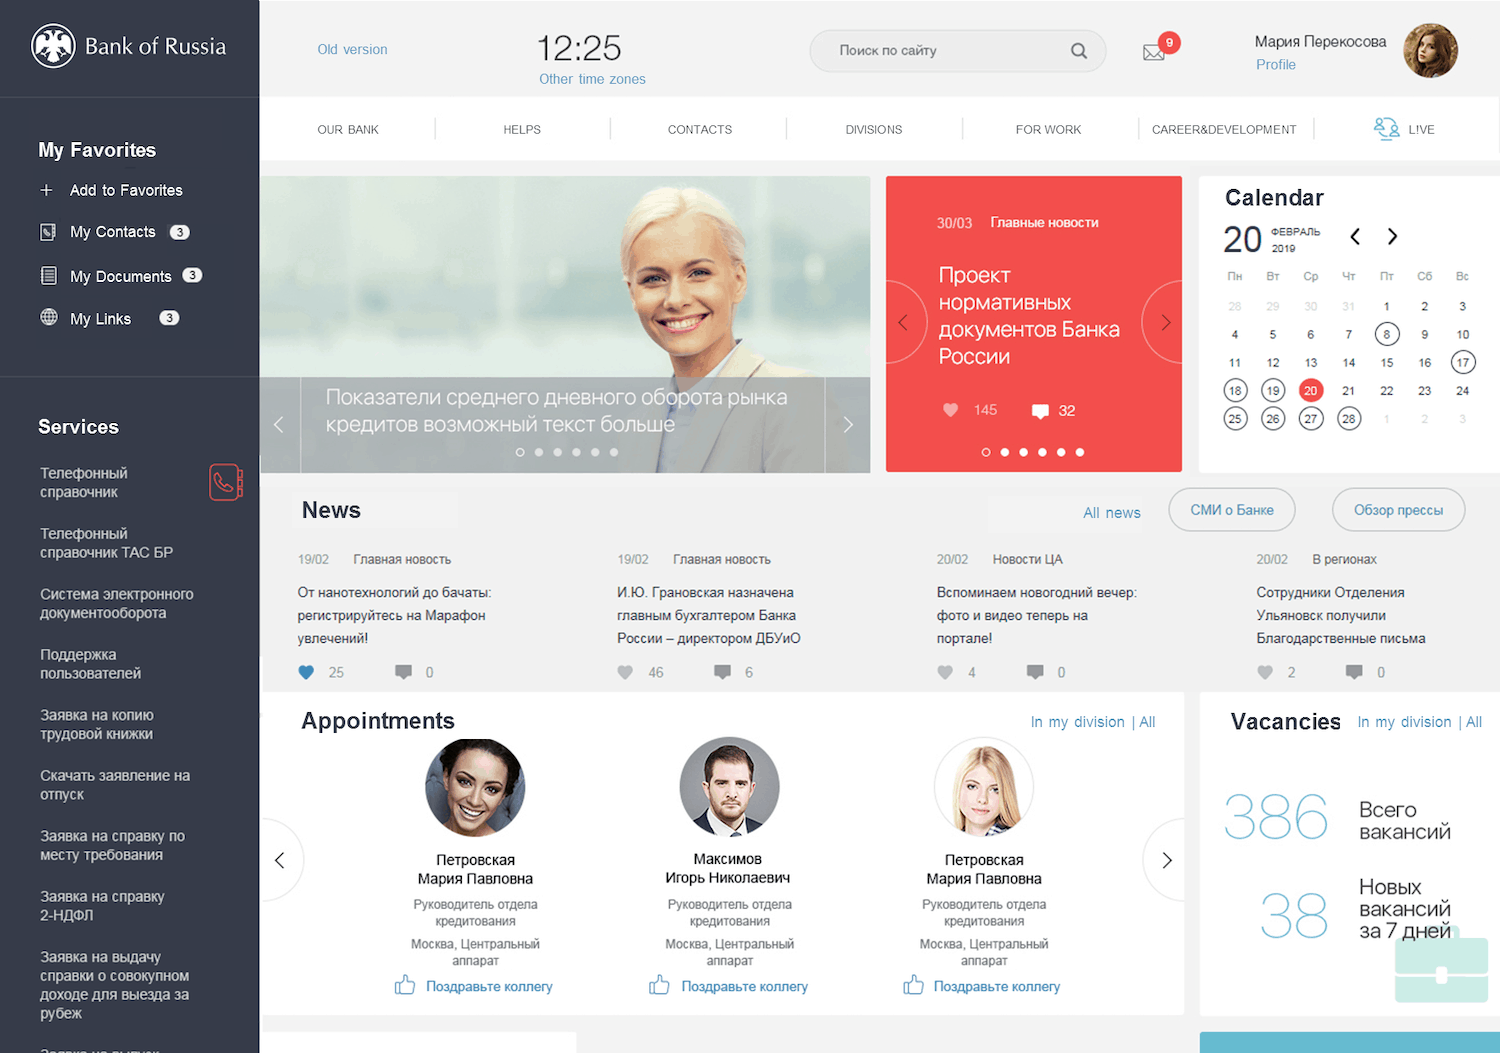 Bank of Russia: Designing a modern intranet with great UX